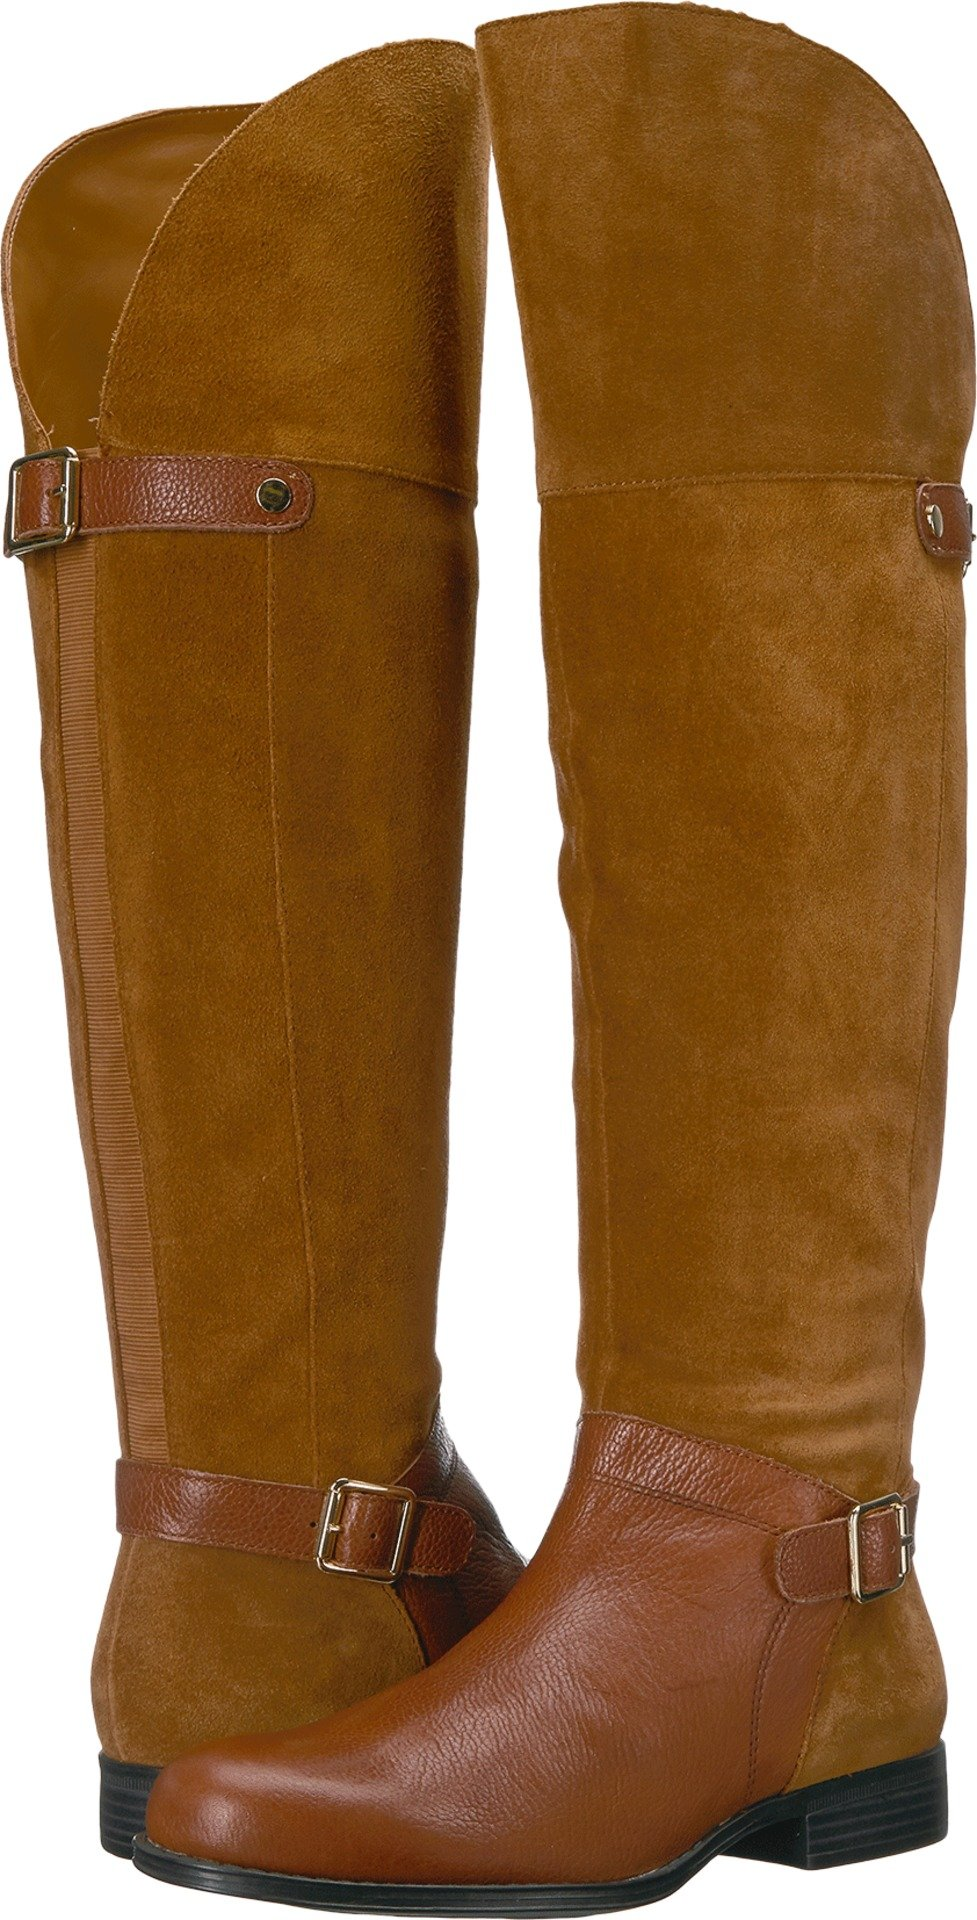 Naturalizer Women's January Riding Boot, Camel, 7 M US